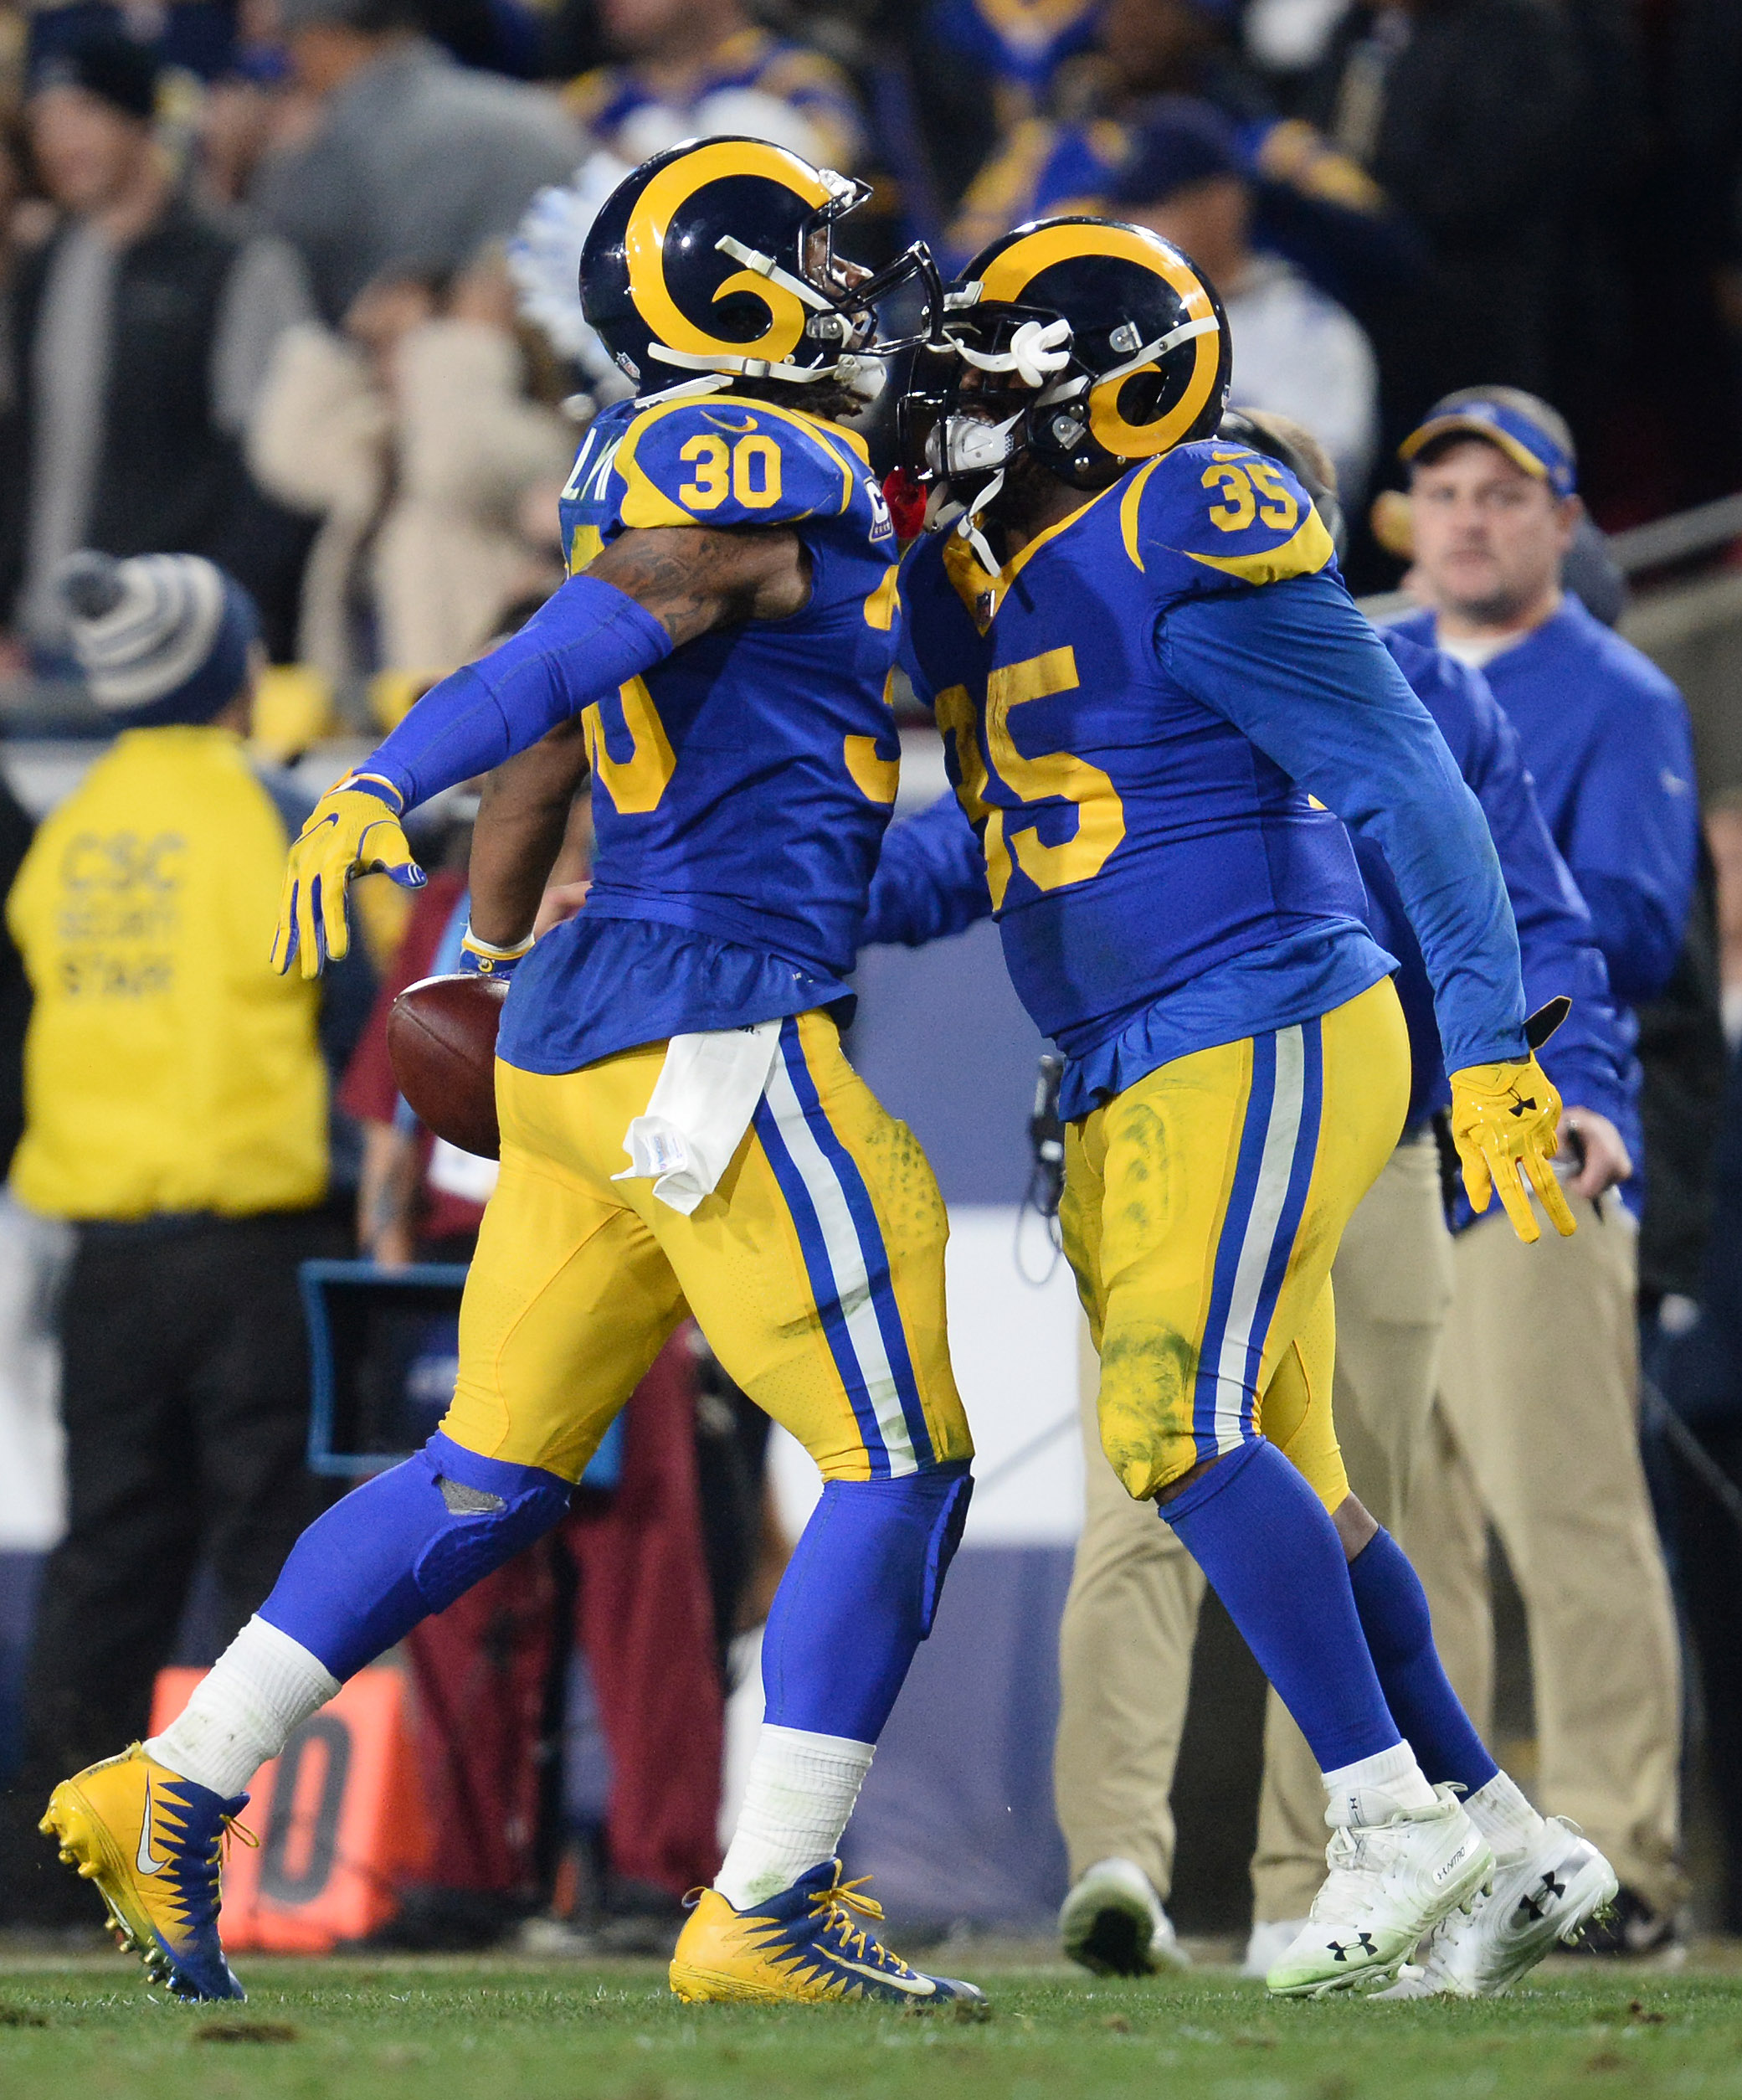 Los Angeles Rams RB Todd Gurley celebrates with RB C.J. Anderson after scoring a touchdown against the Dallas Cowboys in the Divisional Round of the 2019 NFL Playoffs, Jan. 12, 2019.